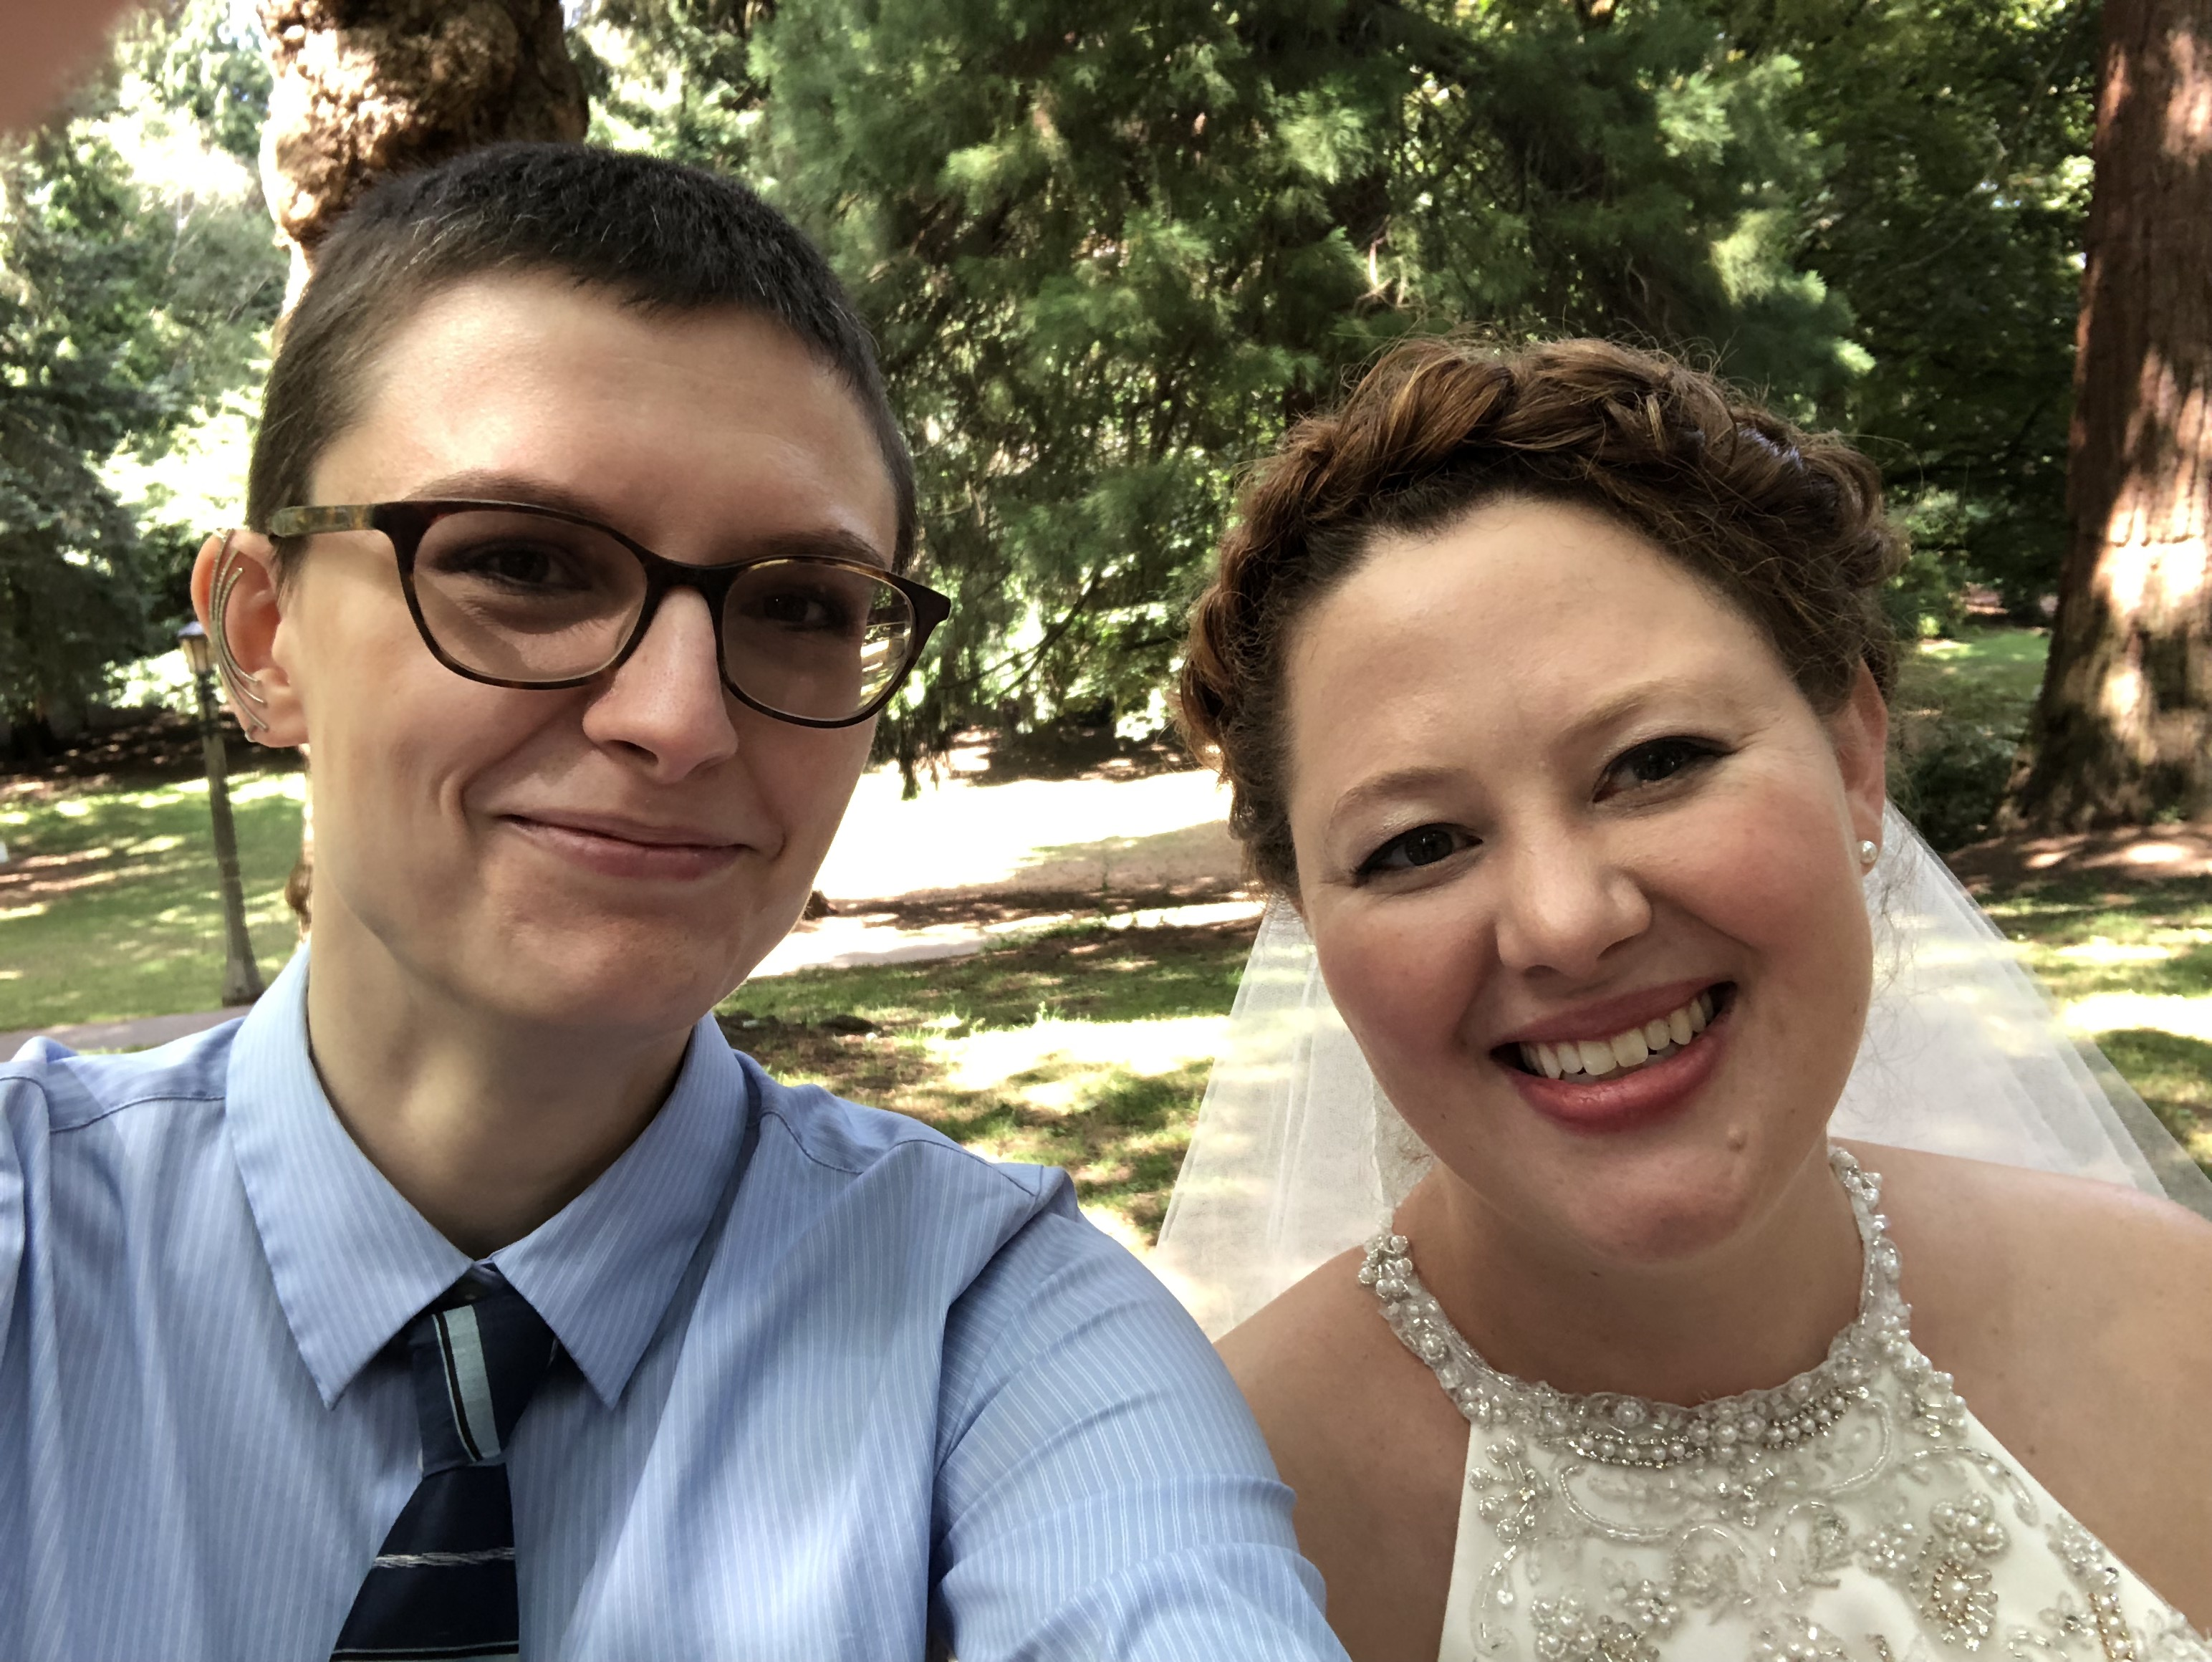 Selfie of me and my friend at her wedding. I'm wearing a blue button up shirt and tie and she's in a white bridal gown with her hair up. We are smiling.